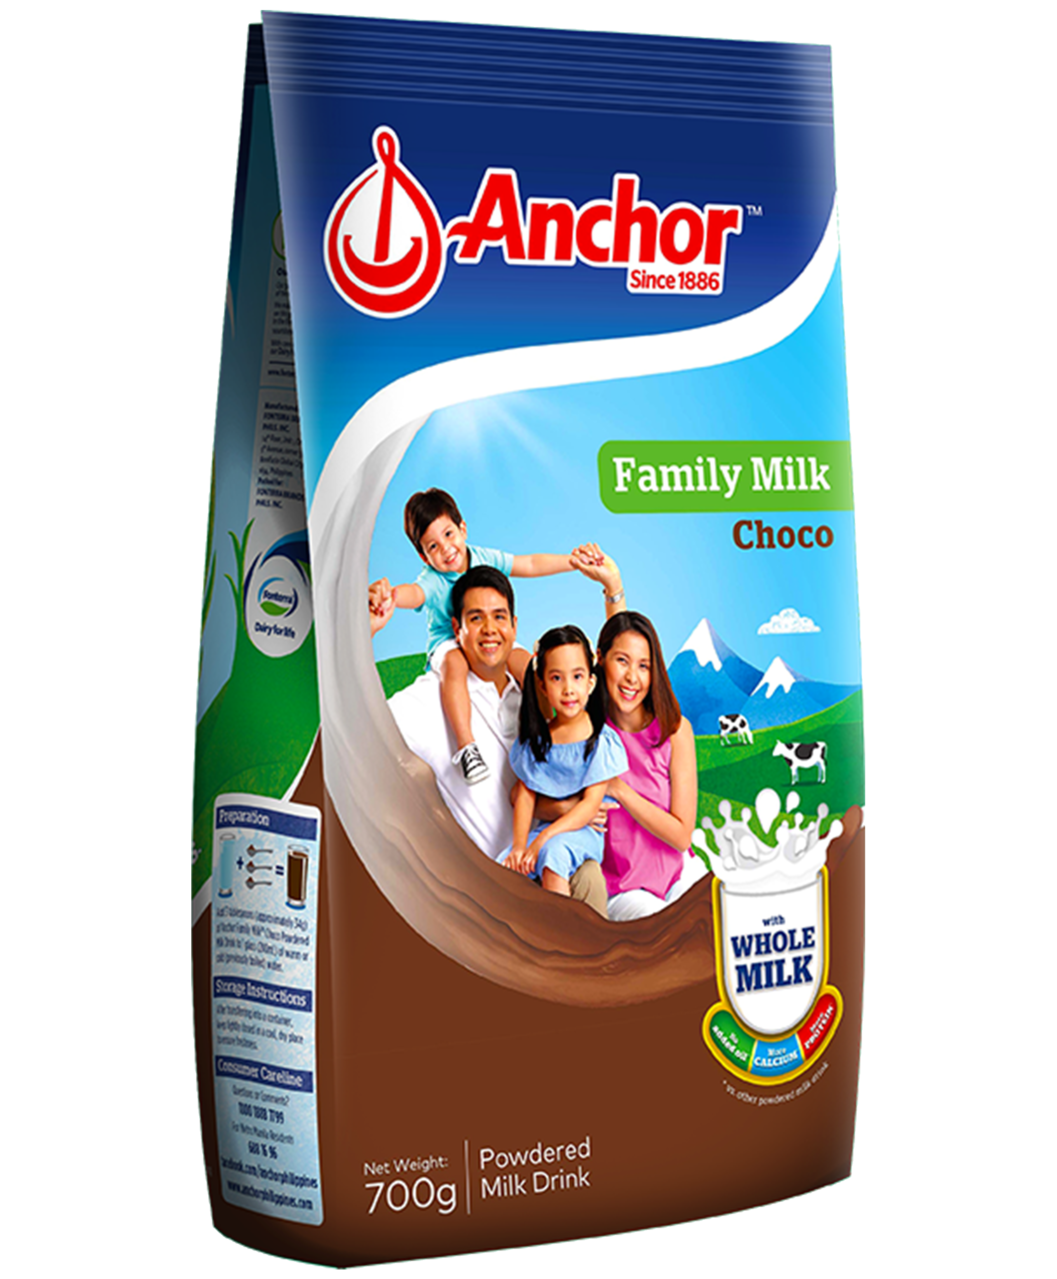 Anchor Family Milk Choco